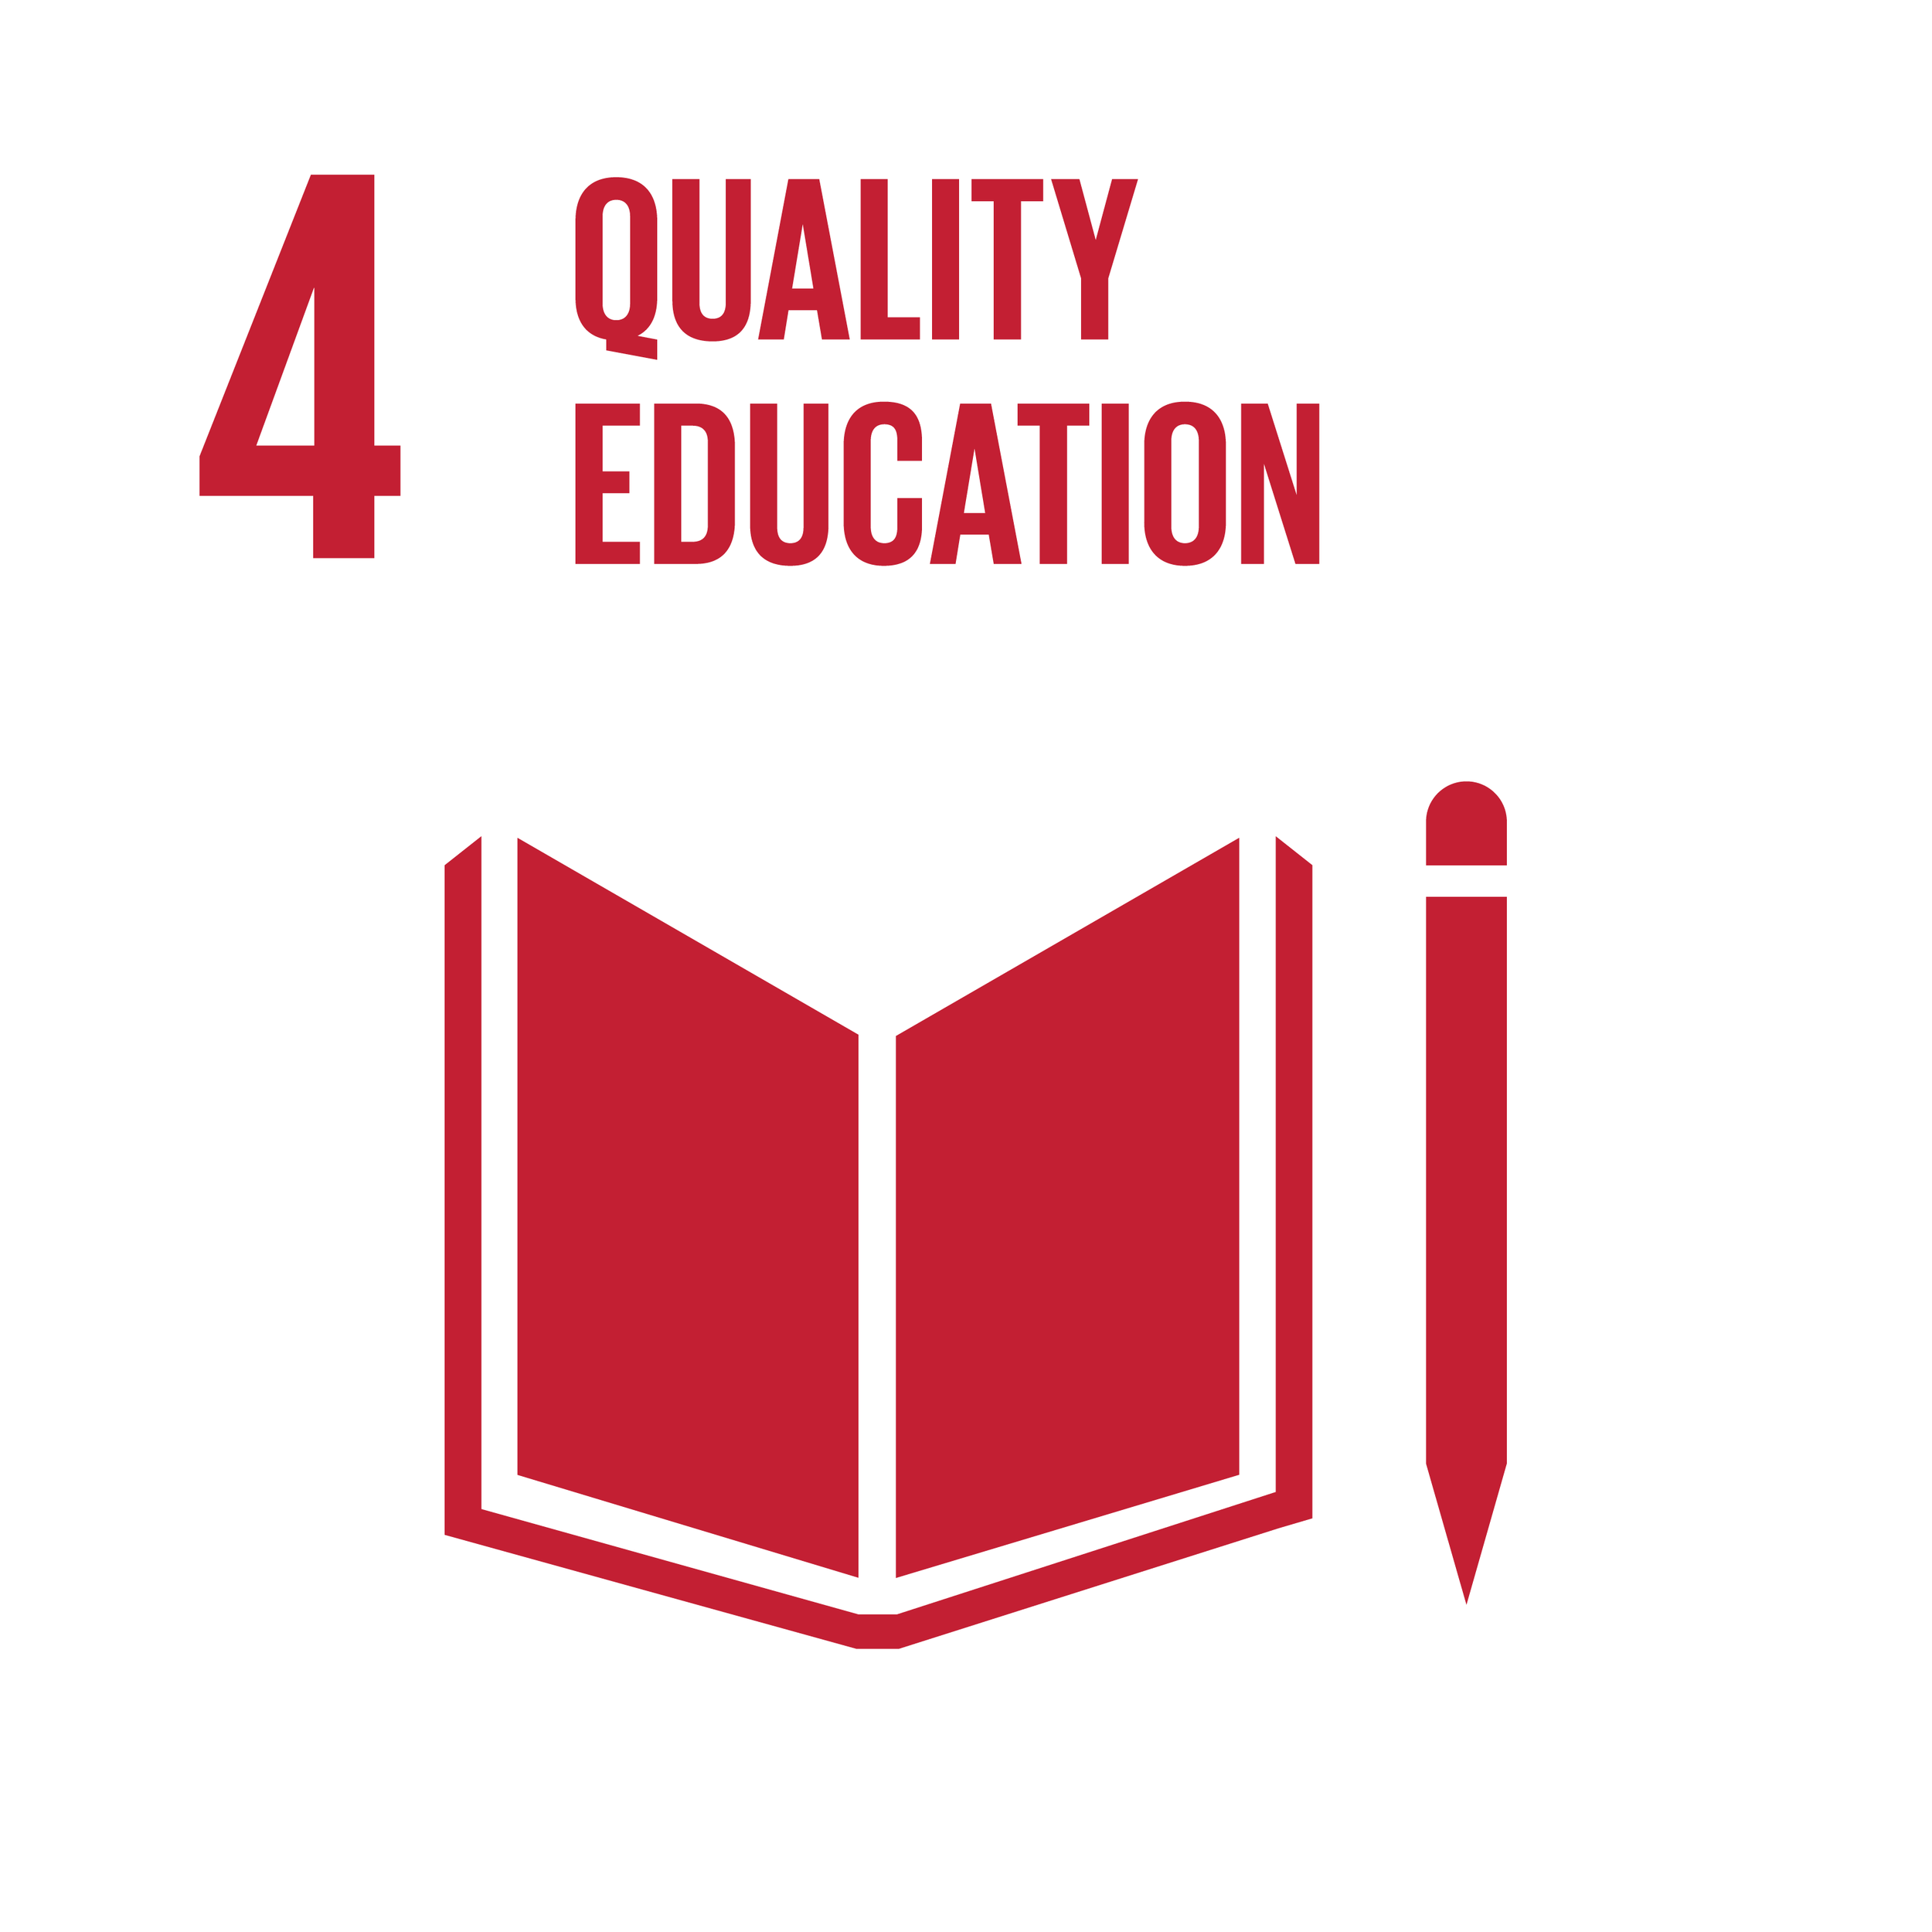 E_INVERTED SDG goals_icons-individual-RGB-04.png